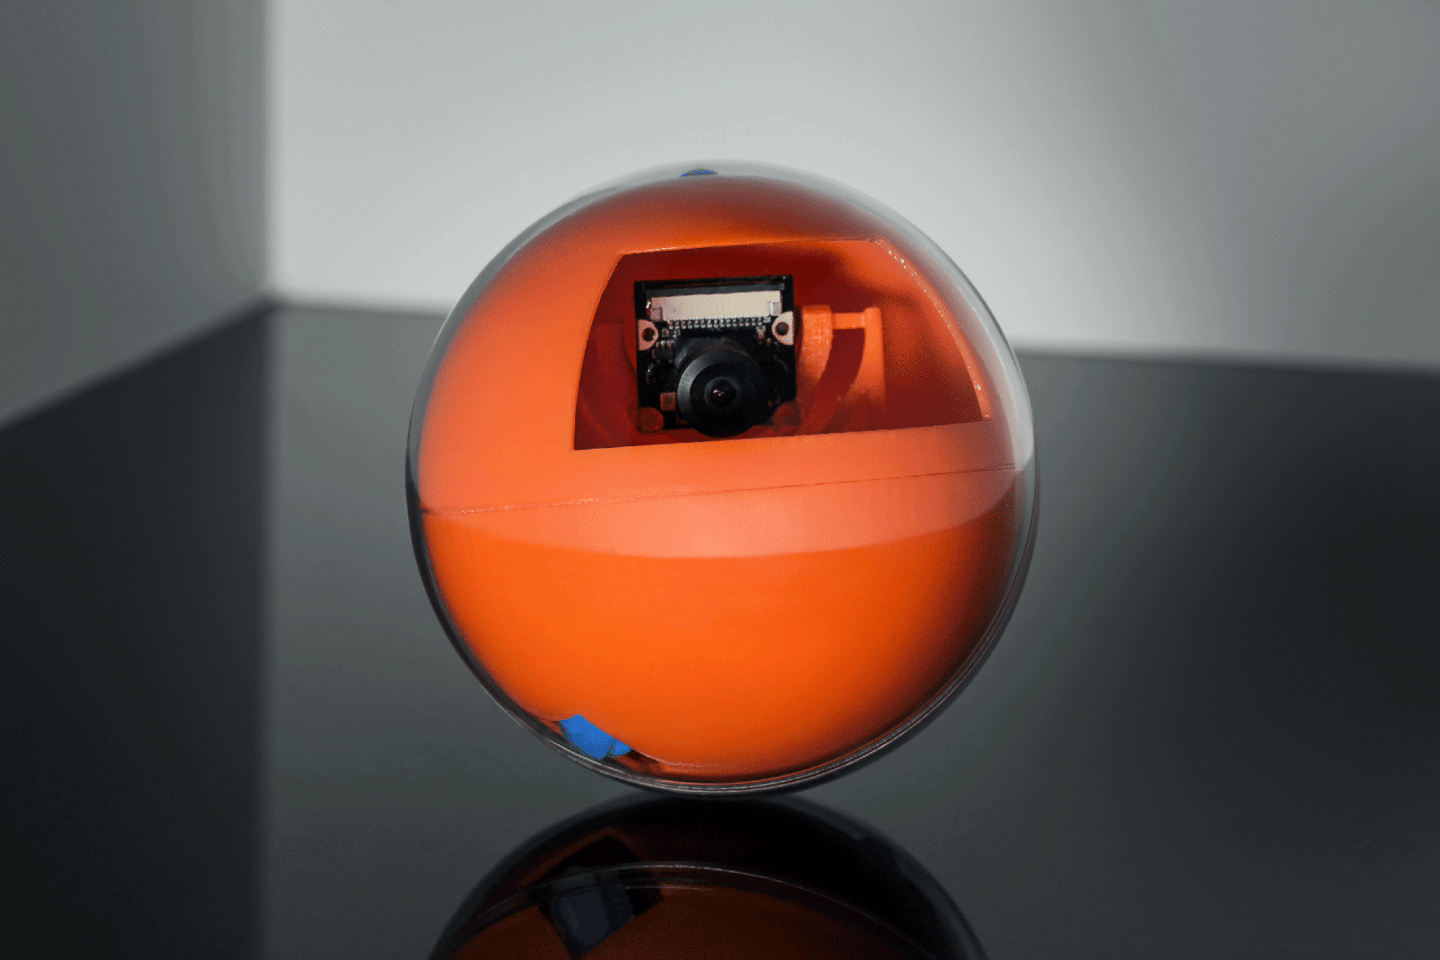 PlayDate is a remote-control ball with a live-streaming HD camera inside